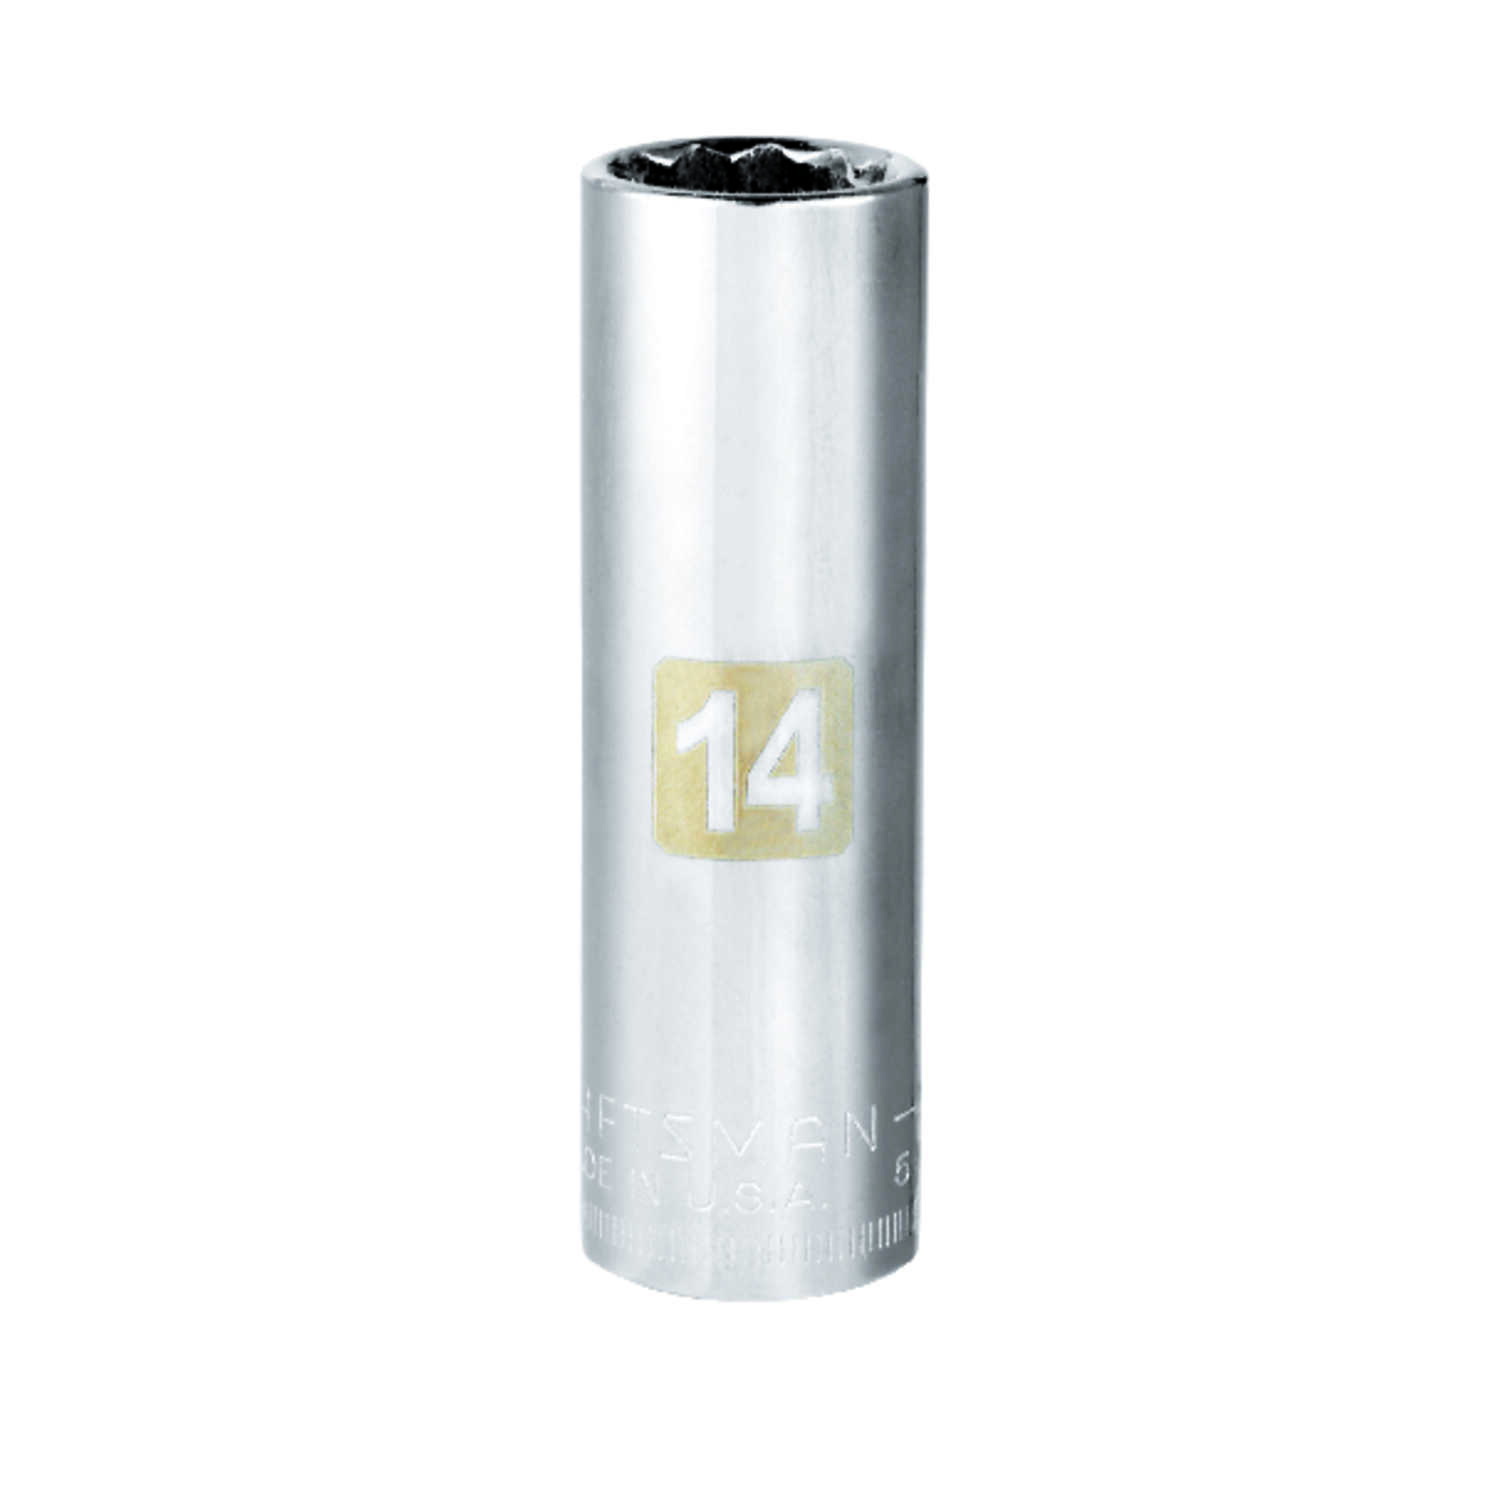 Craftsman  14 mm  x 3/8 in. drive  Metric  12 Point Deep  Socket  1 pc.